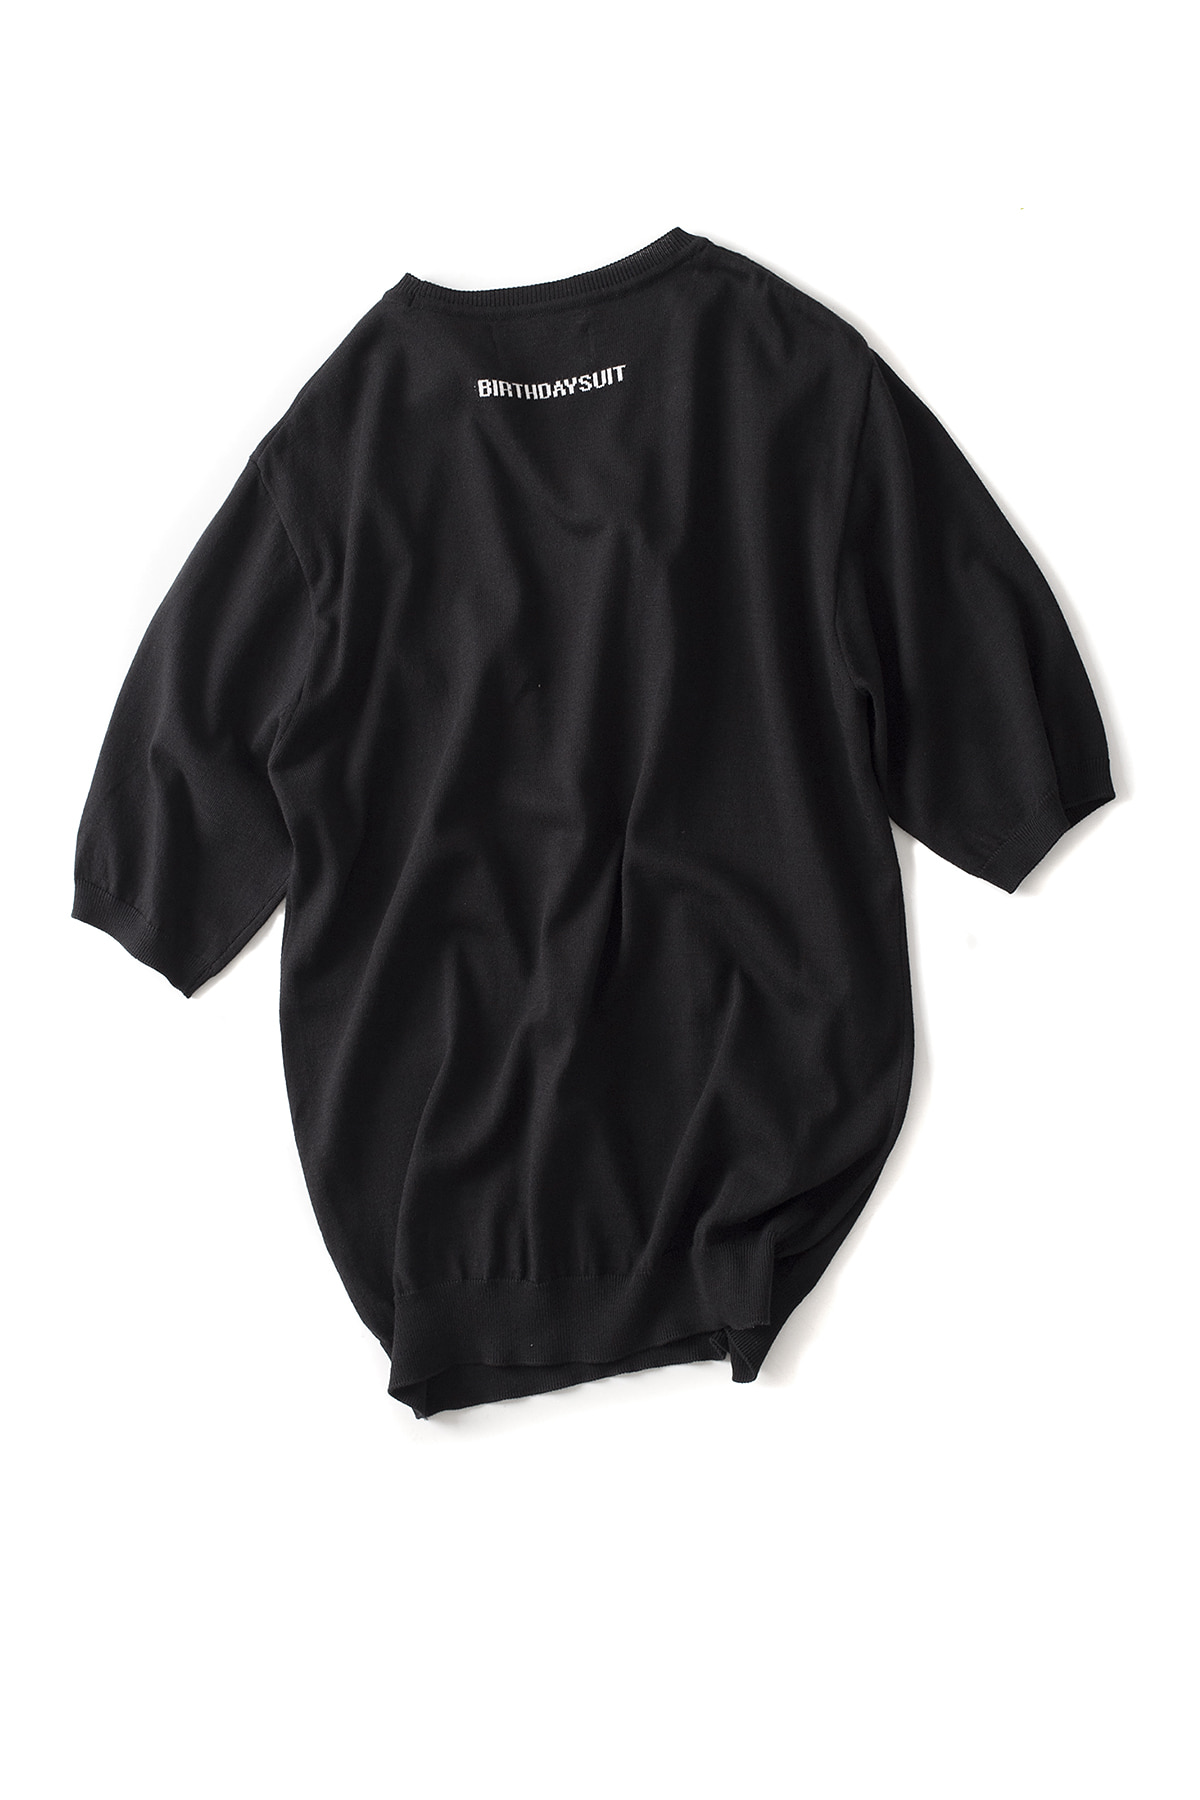 BIRTHDAYSUIT : Back Logo Modal R.Neck Knit (Black)